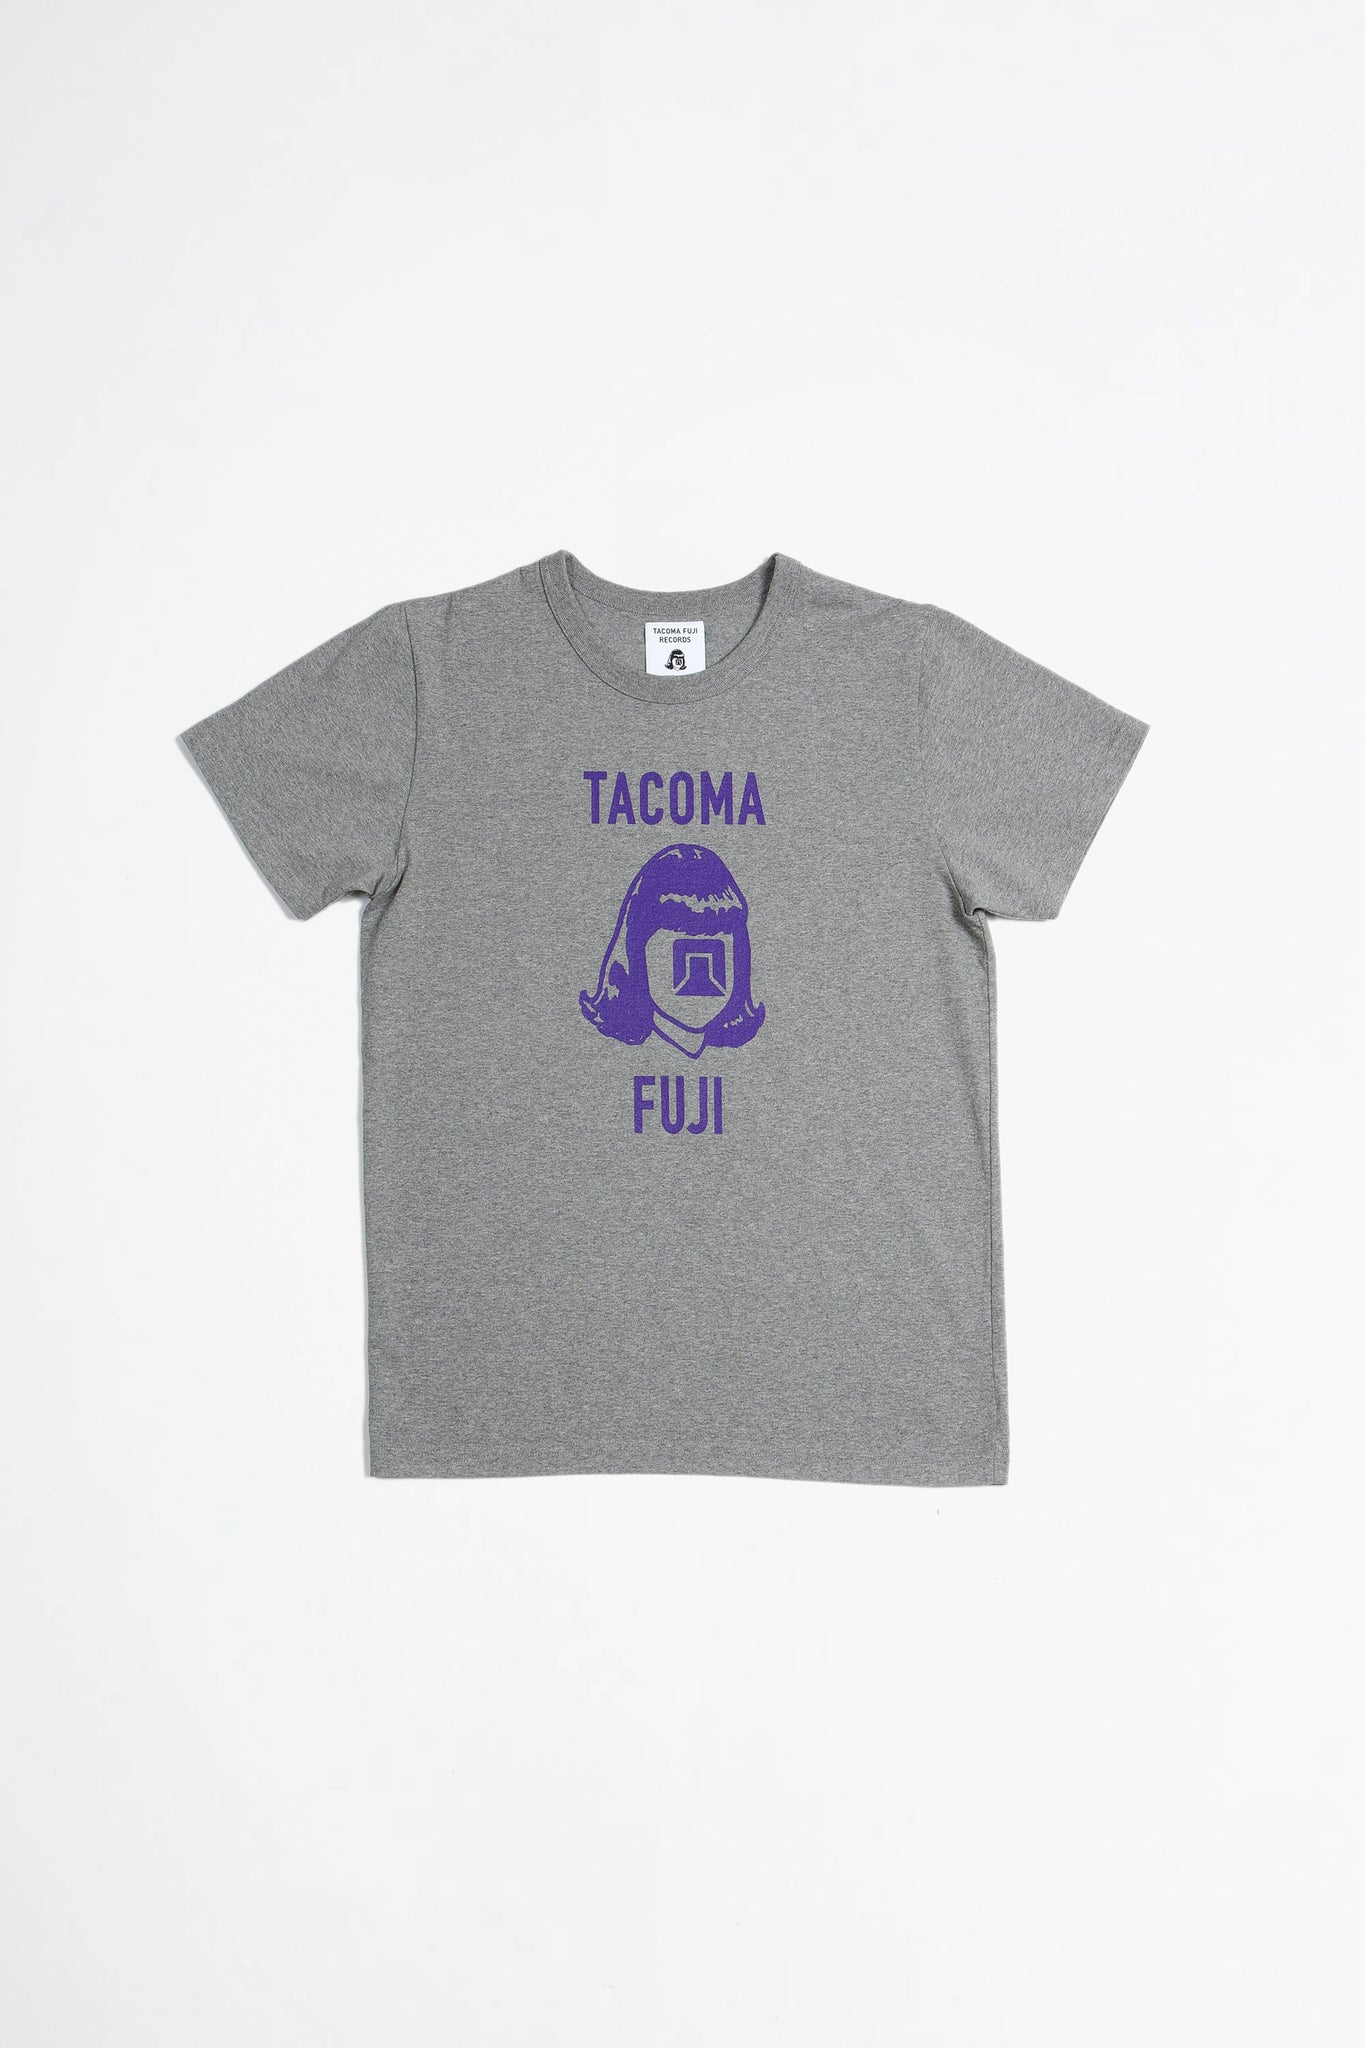 Tacoma Fuji Records Logo Mark 20 grey